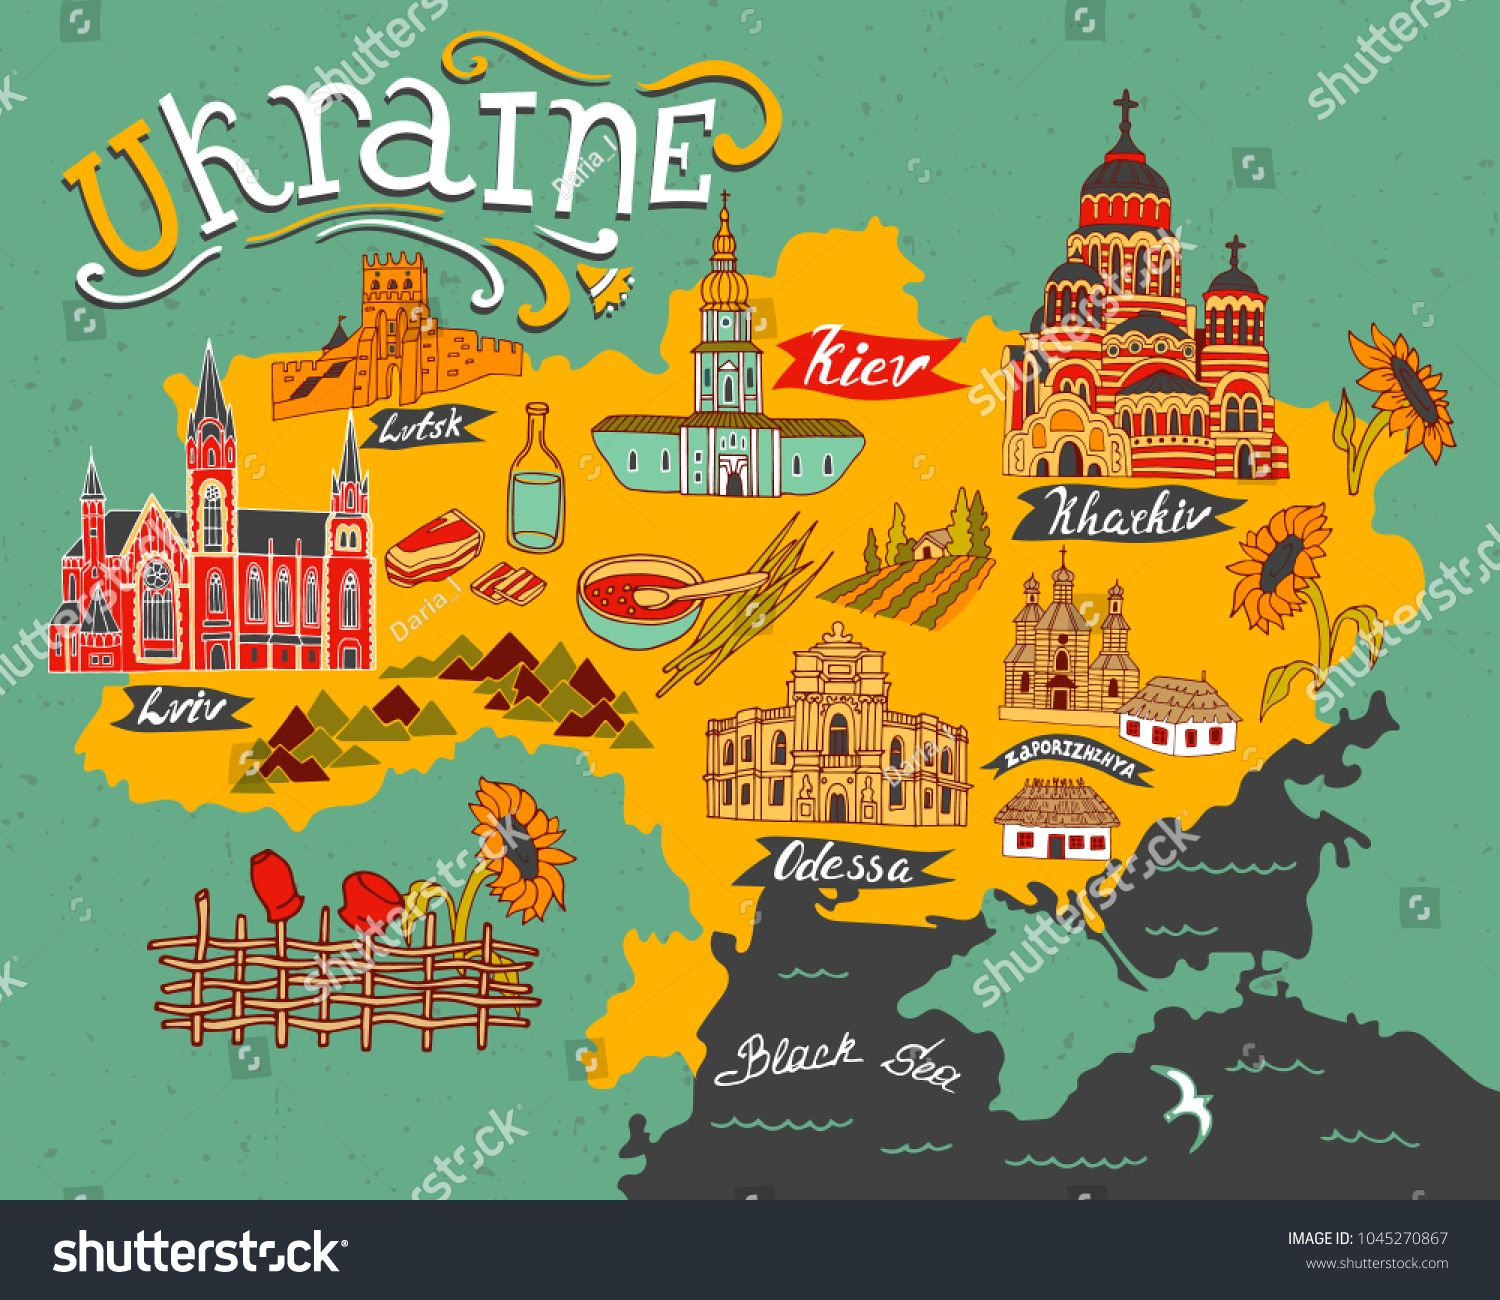 Illustrated Map Of Ukraine With Elements Of Culture And Nature